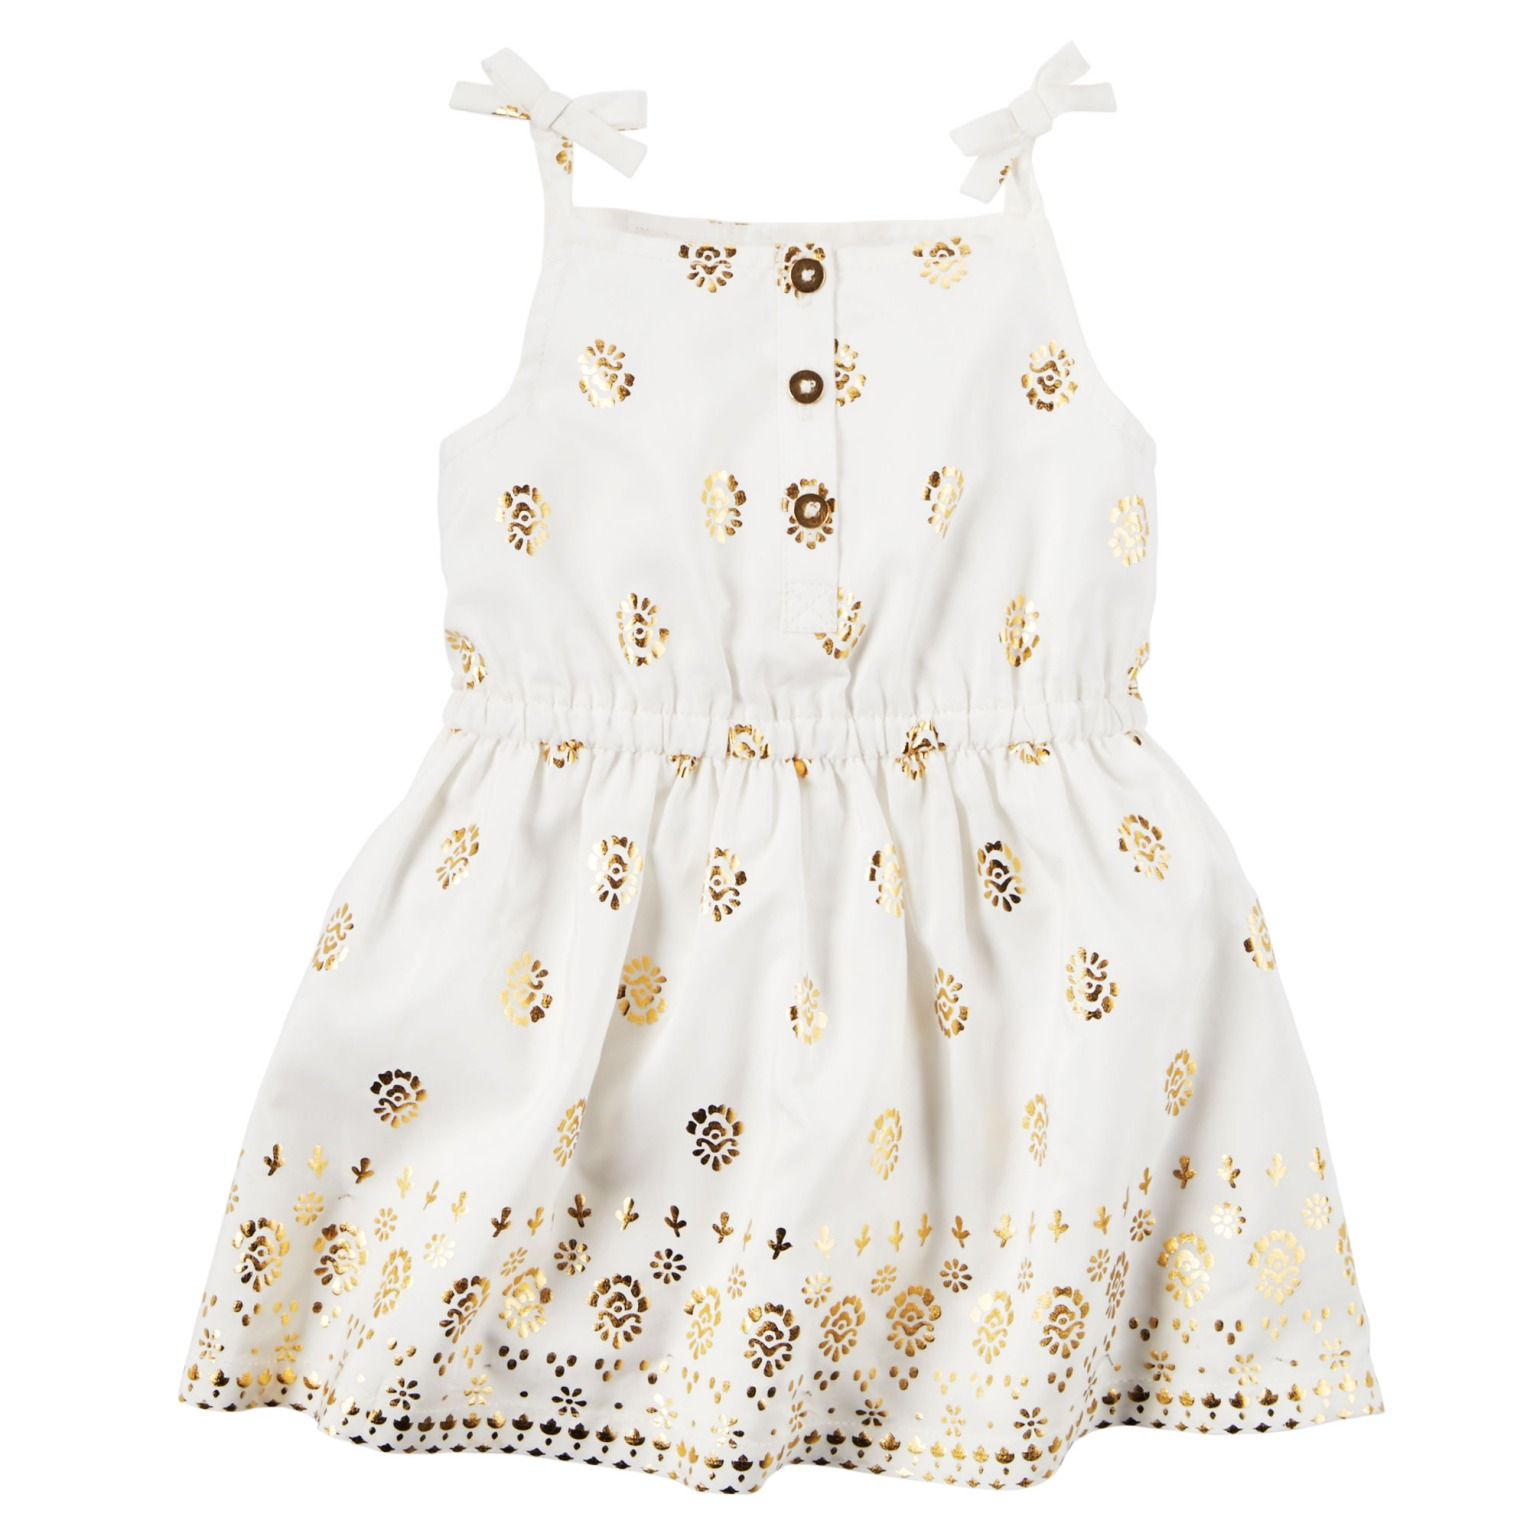 e17e7397cd2f3 Crafted with a pretty gold print and bows at the straps, this cotton ...